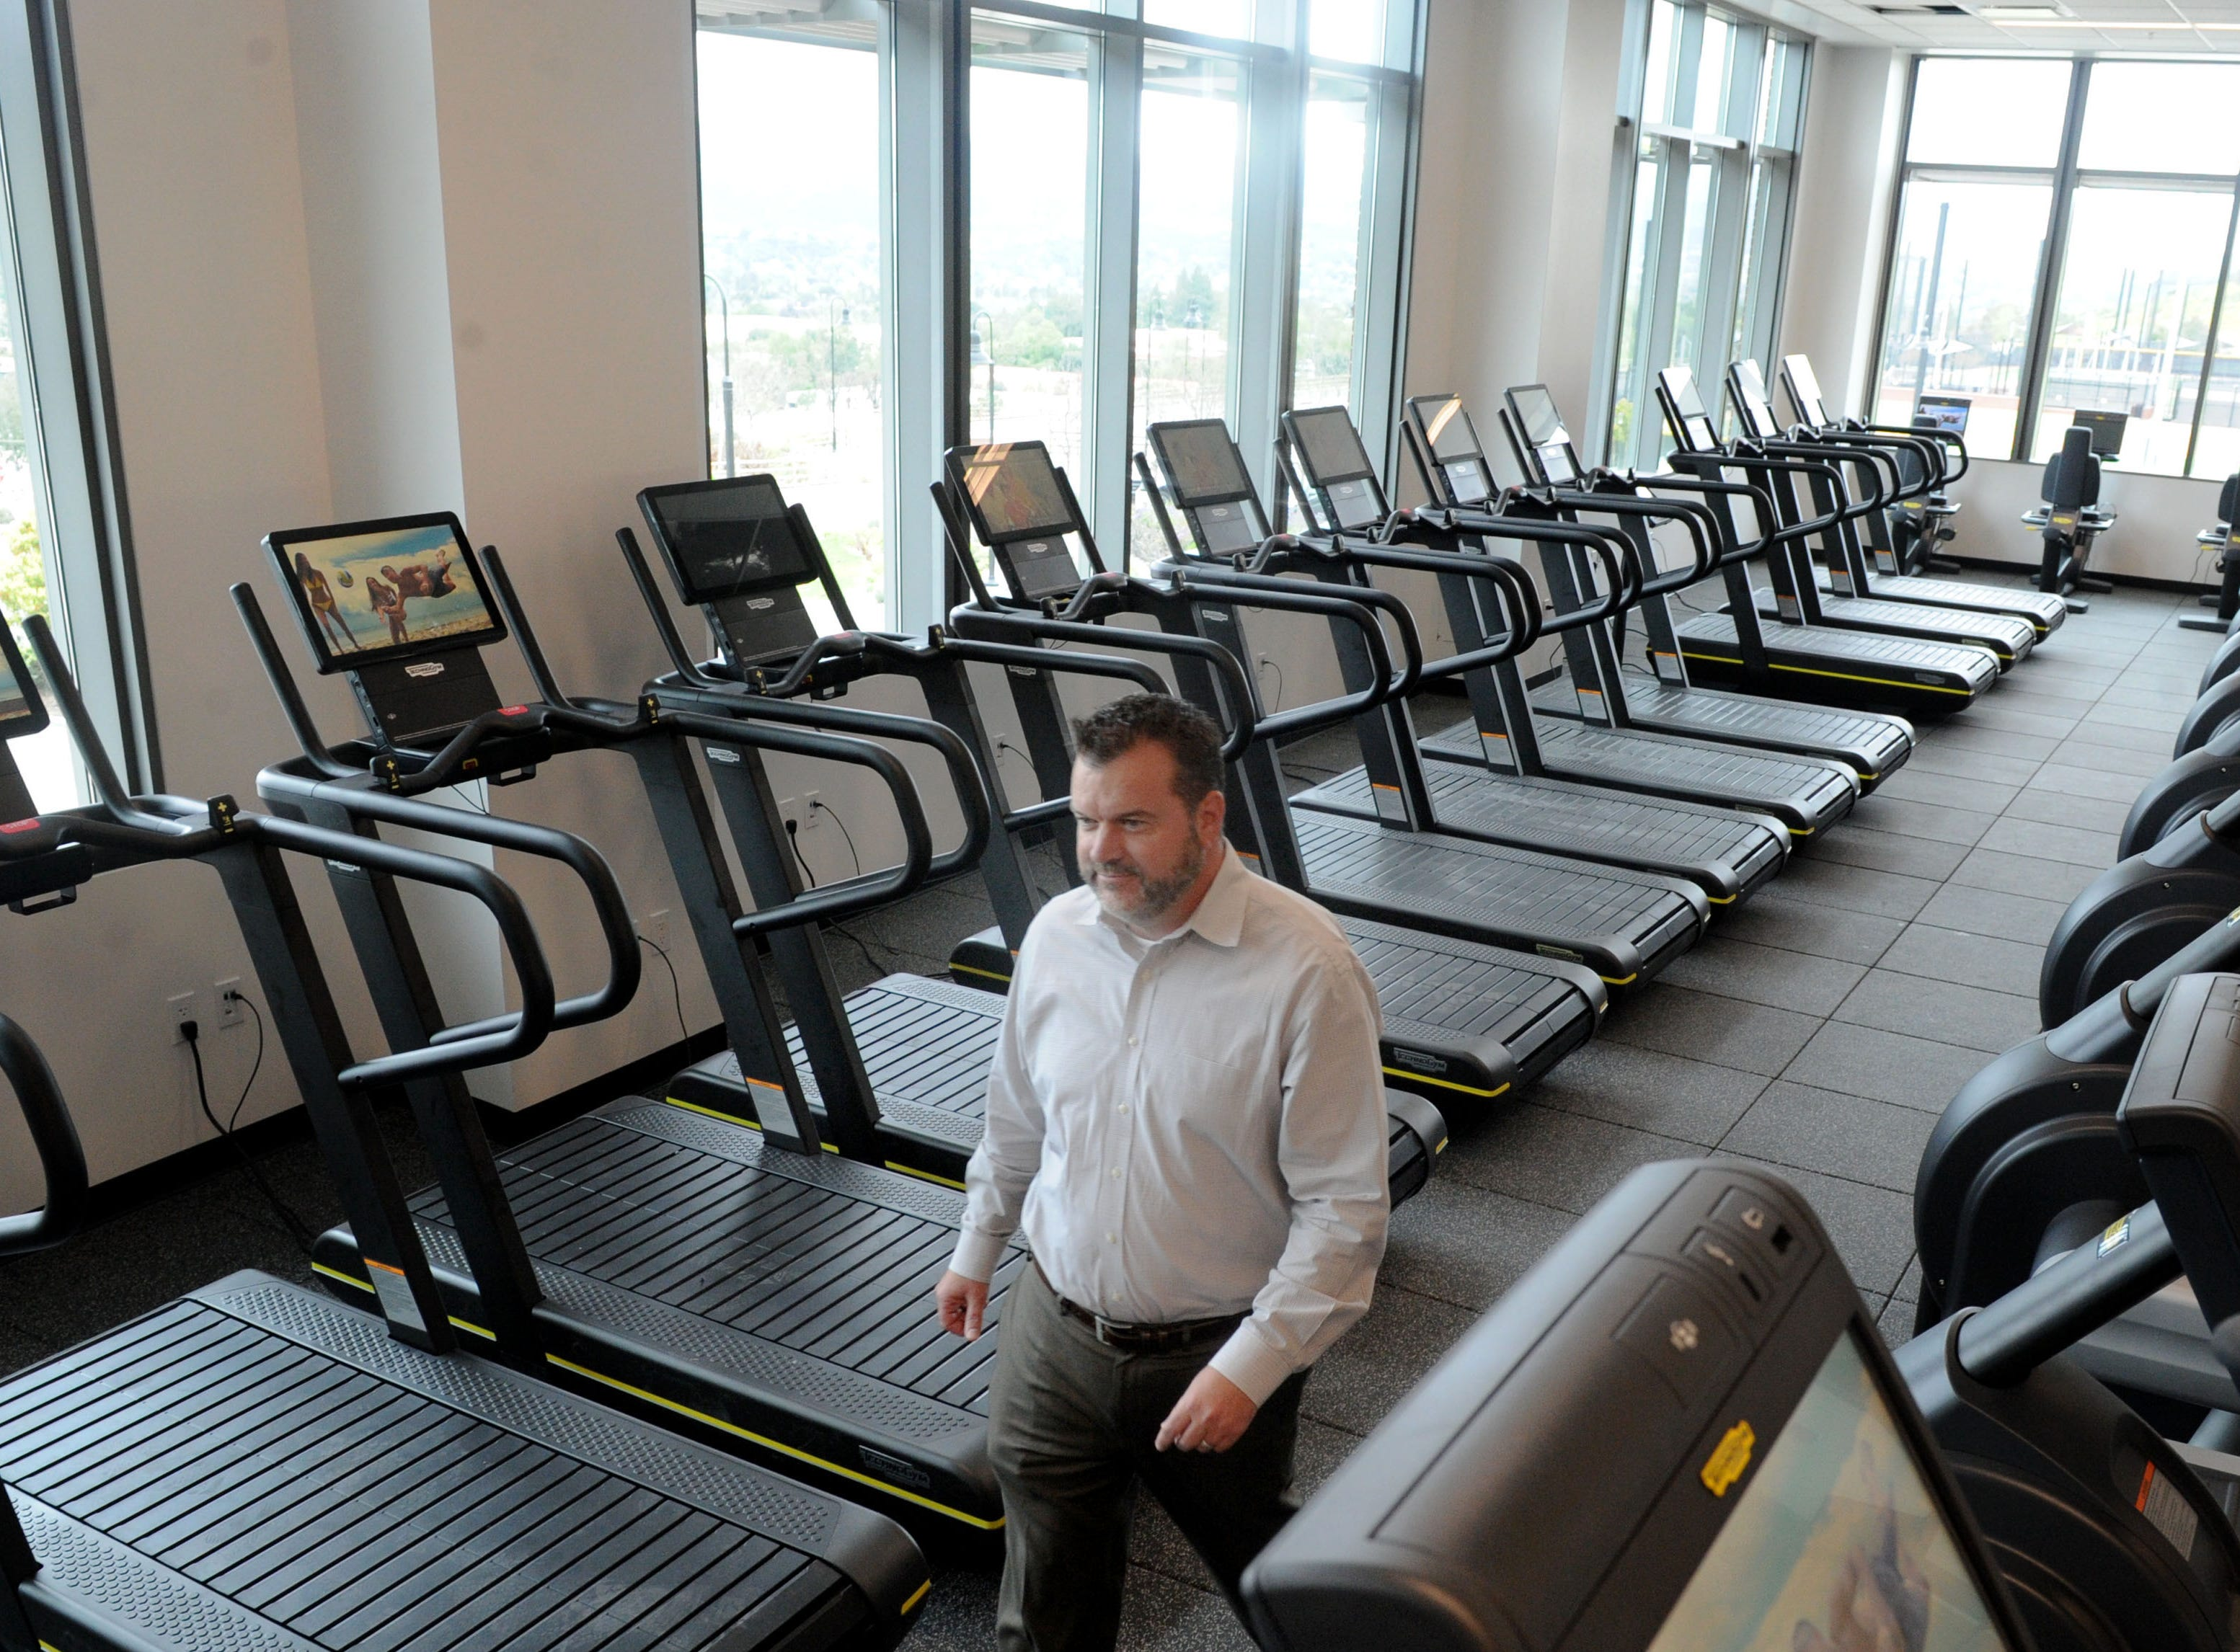 Ronnie Stone, CEO of the Southeast Ventura County YMCA, walks through the gym of the new Yarrow Family YMCA in Westlake Village. The Y's grand opening is April 27.